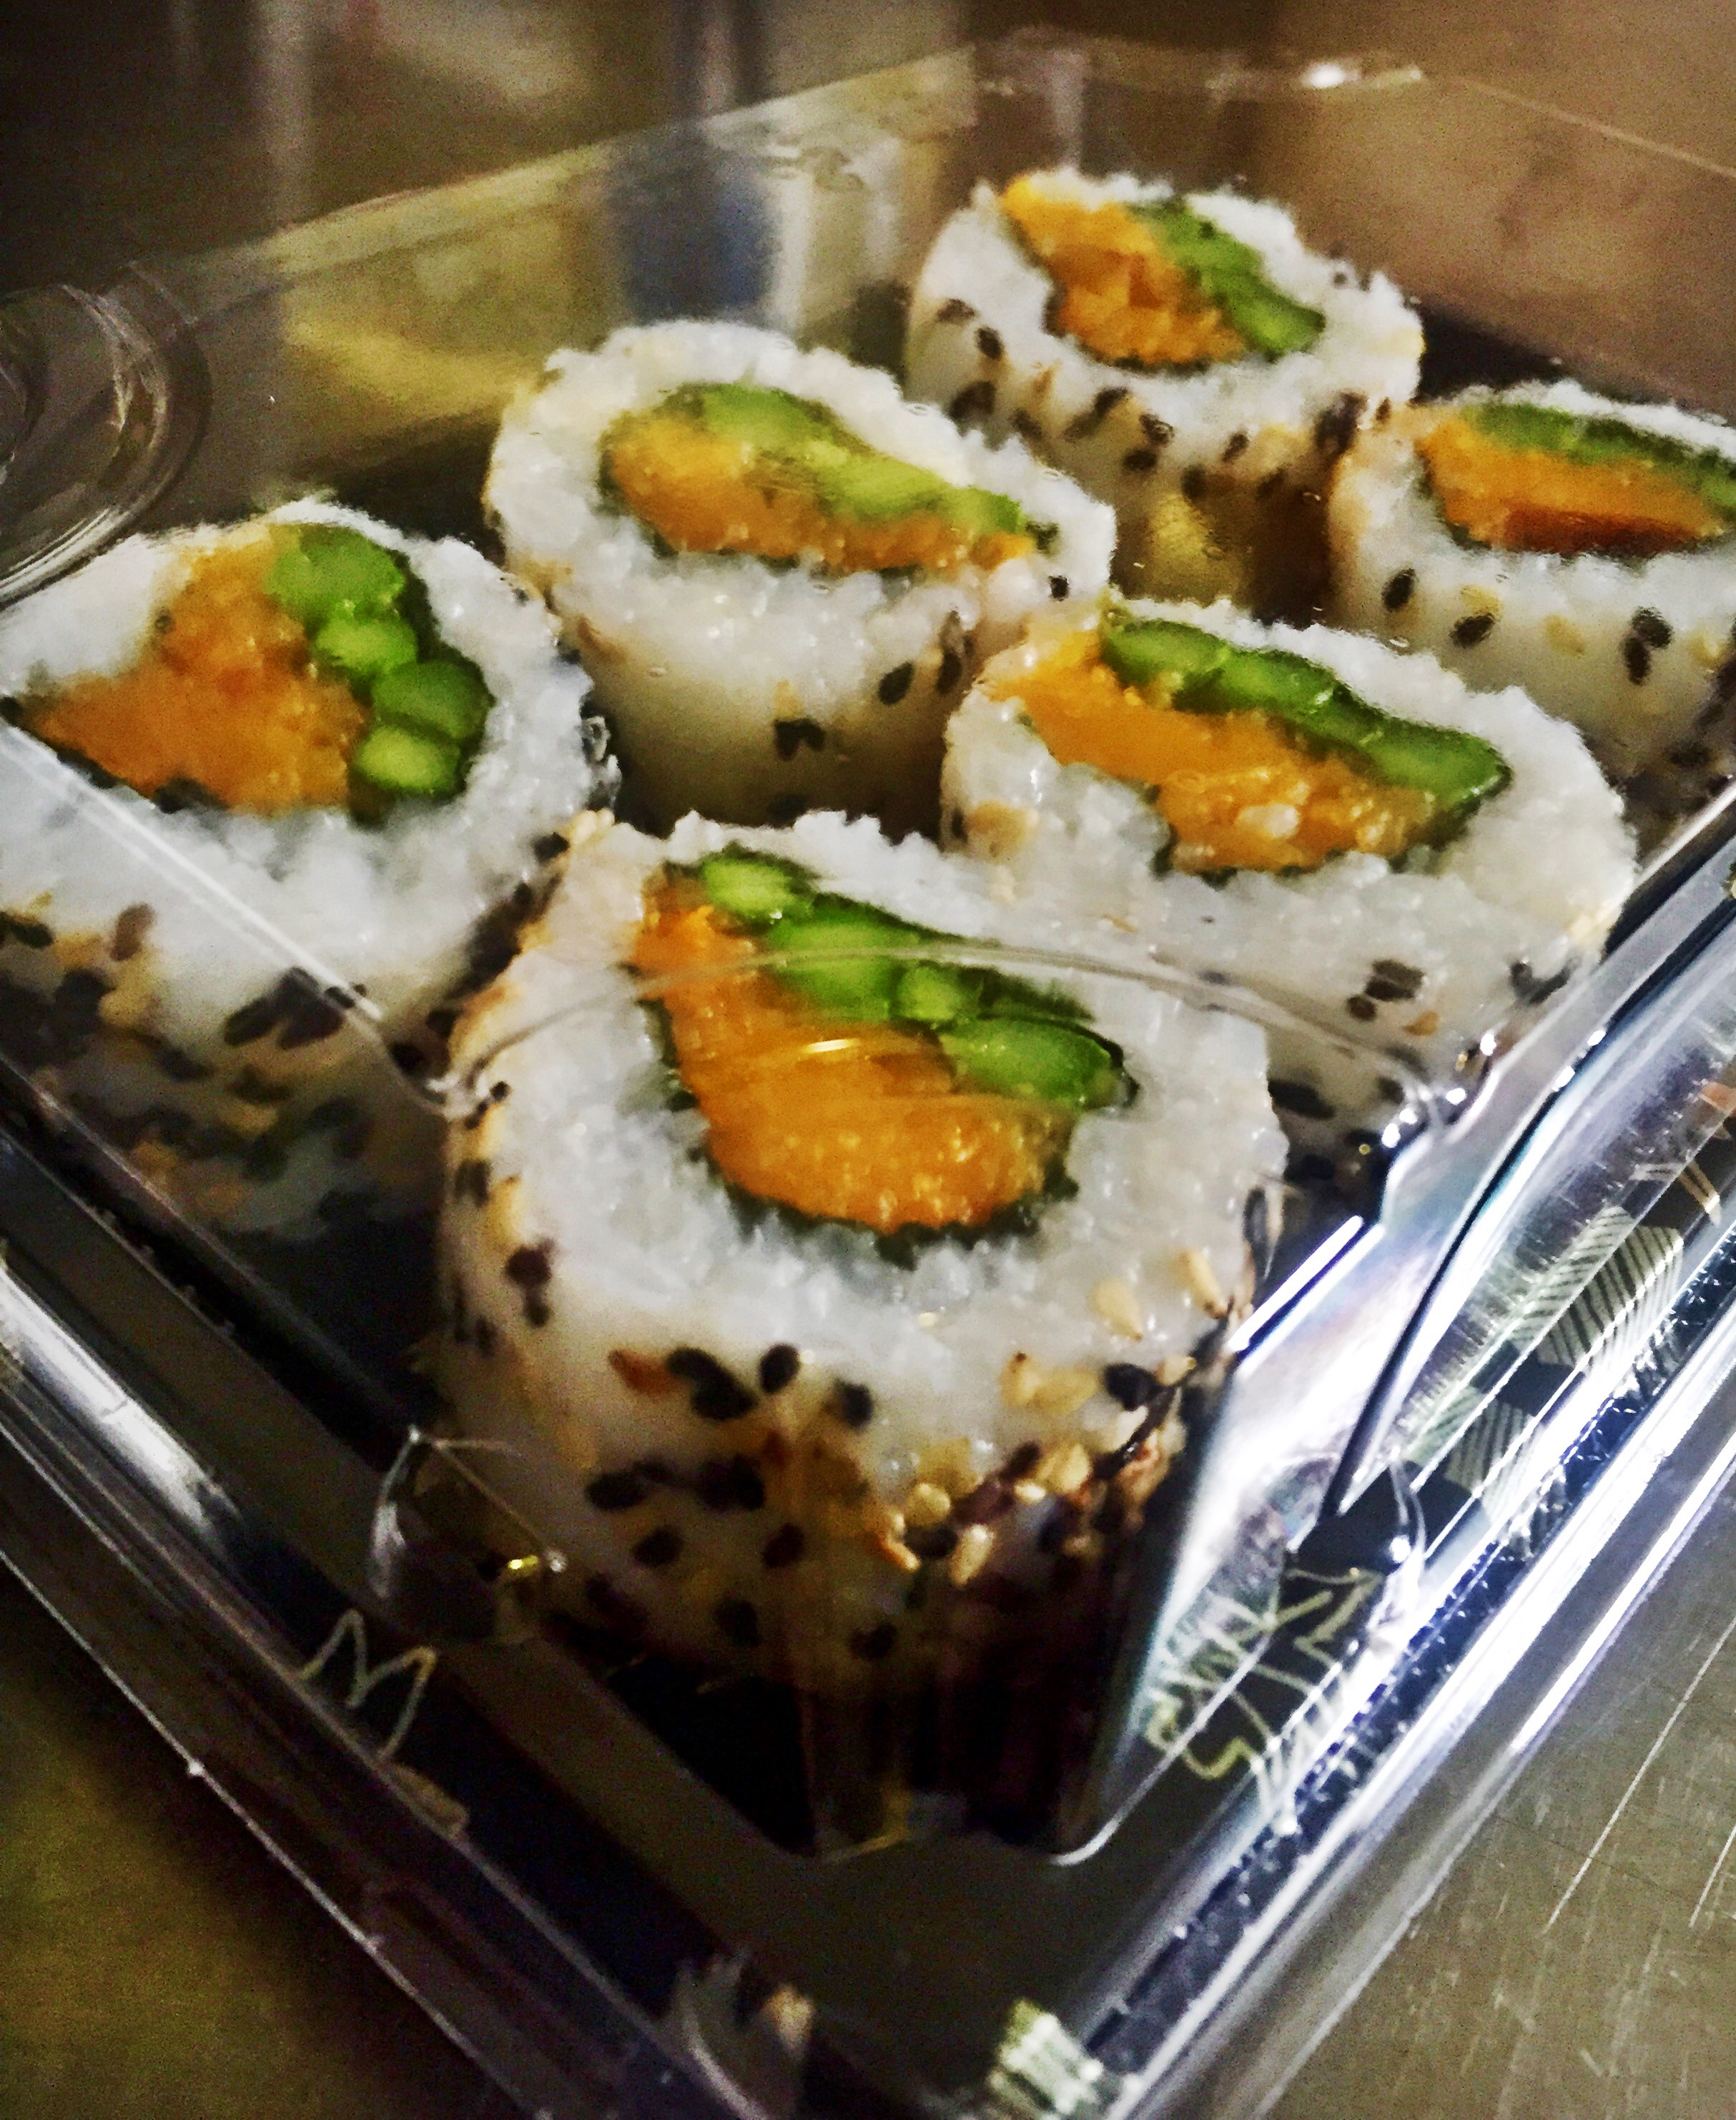 6 x Butternut Squash, Asparagus & Sryracha Hot Sauce Inside Out Rolls - £5